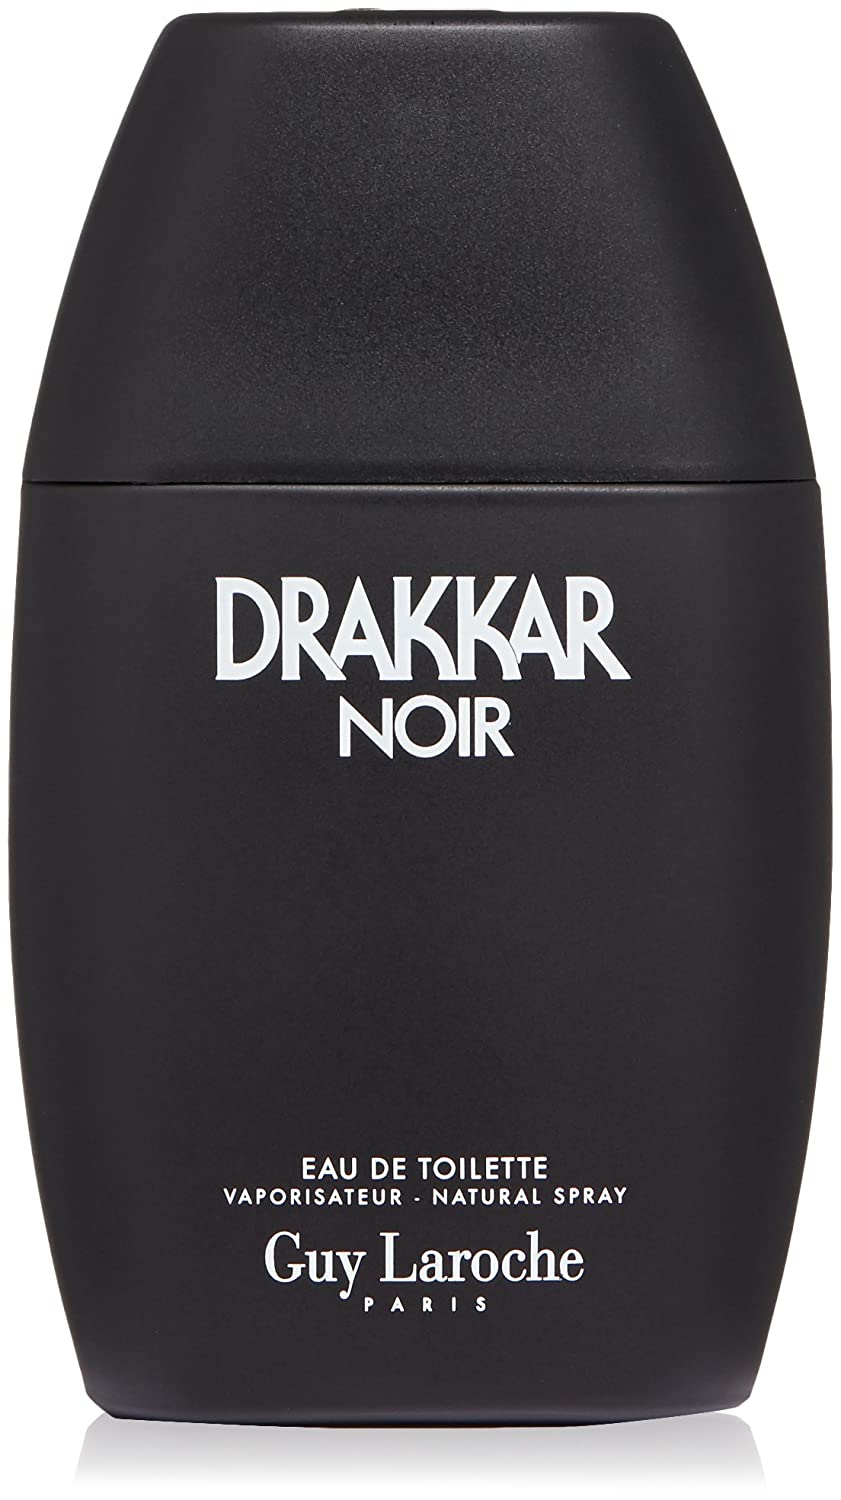 Drakkar Noir By Guy Laroche For Men. Eau De Toilette Spray 3.4 Ounces by Guy Laroche